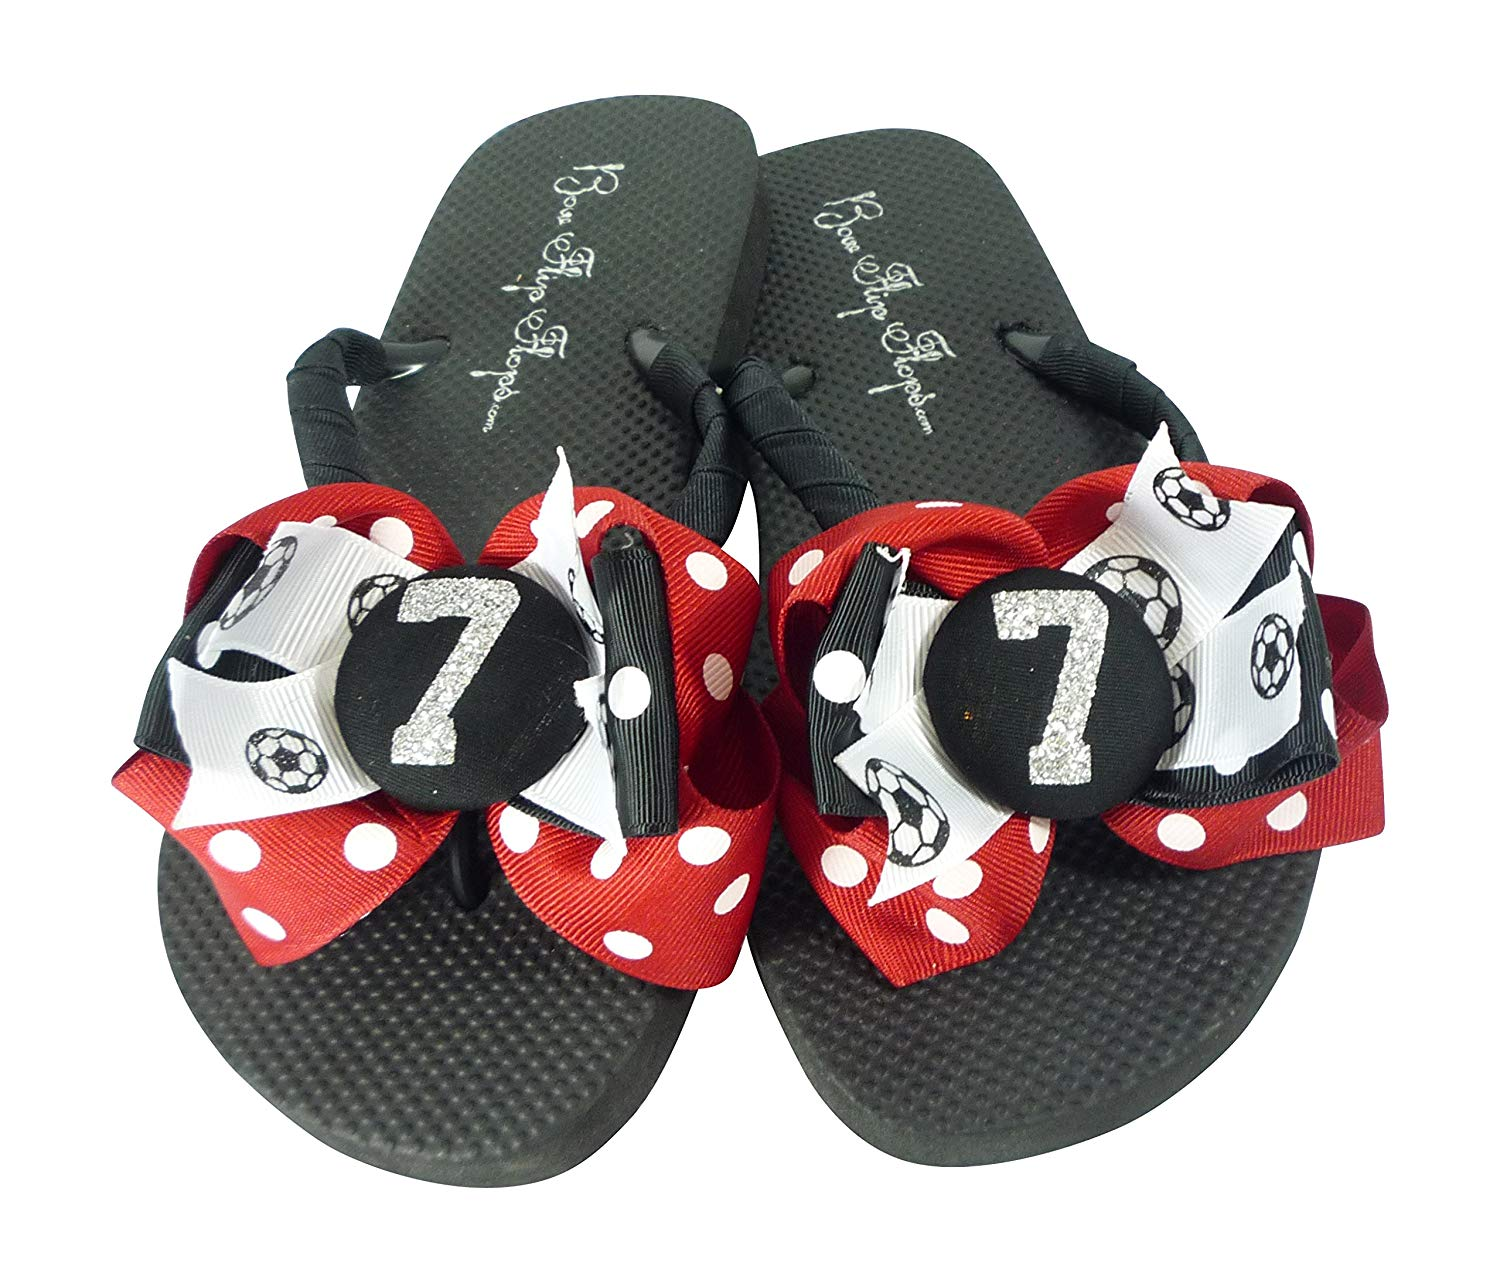 055c94b2aeb134 Get Quotations · Soccer Glitter Bow Flip Flops - Red and Black with Player  Number for Women